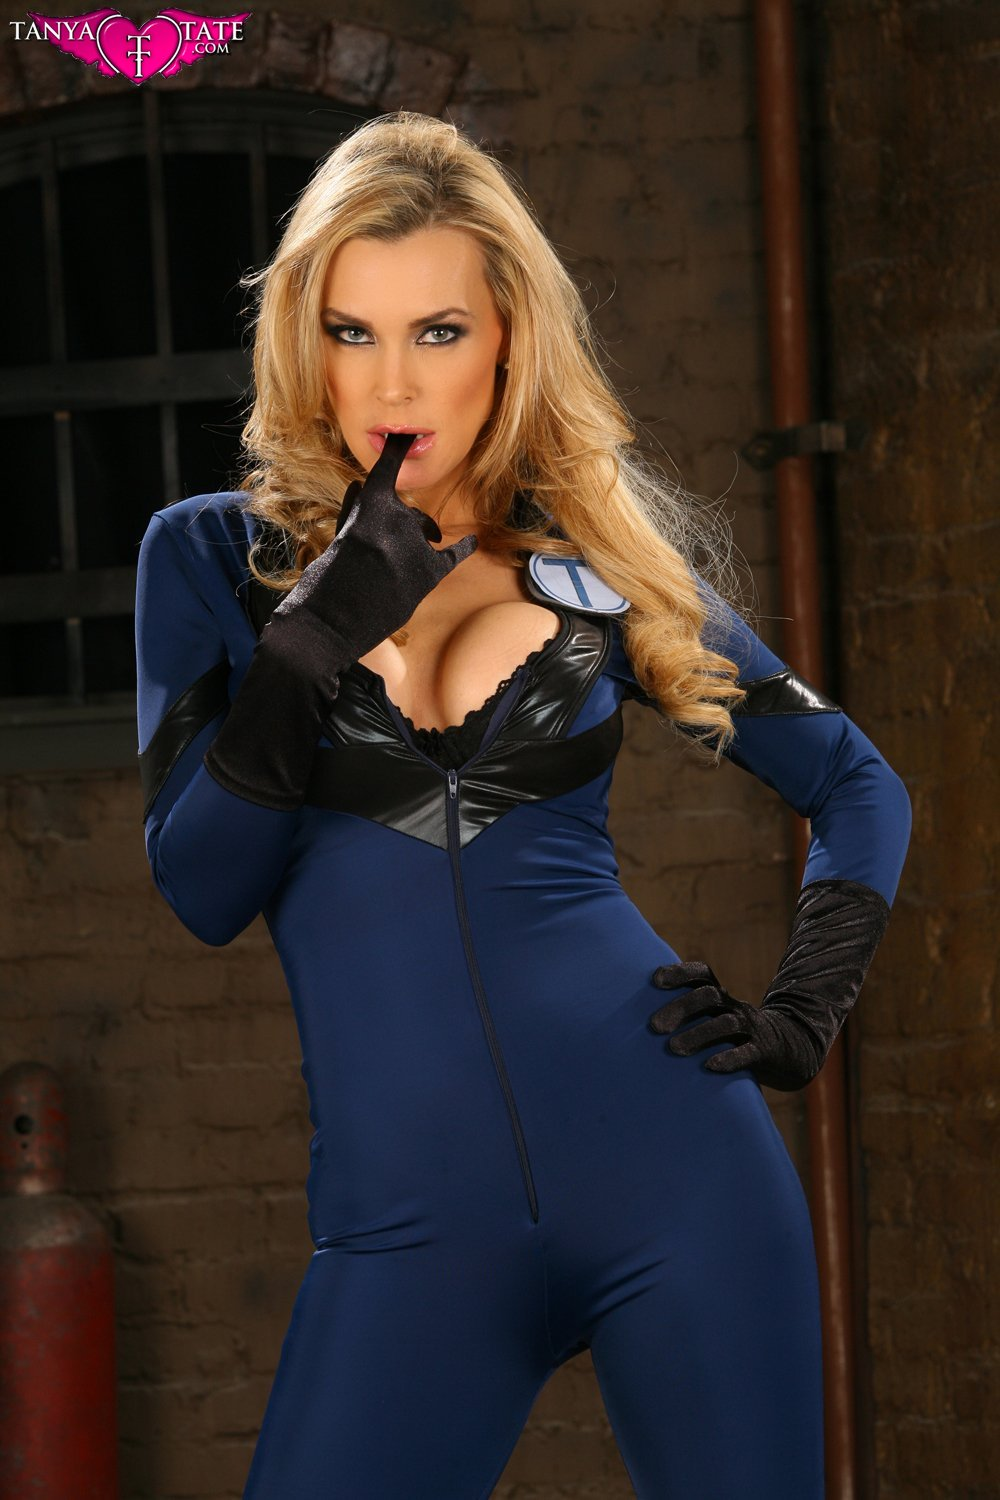 invisible Tanya woman tate